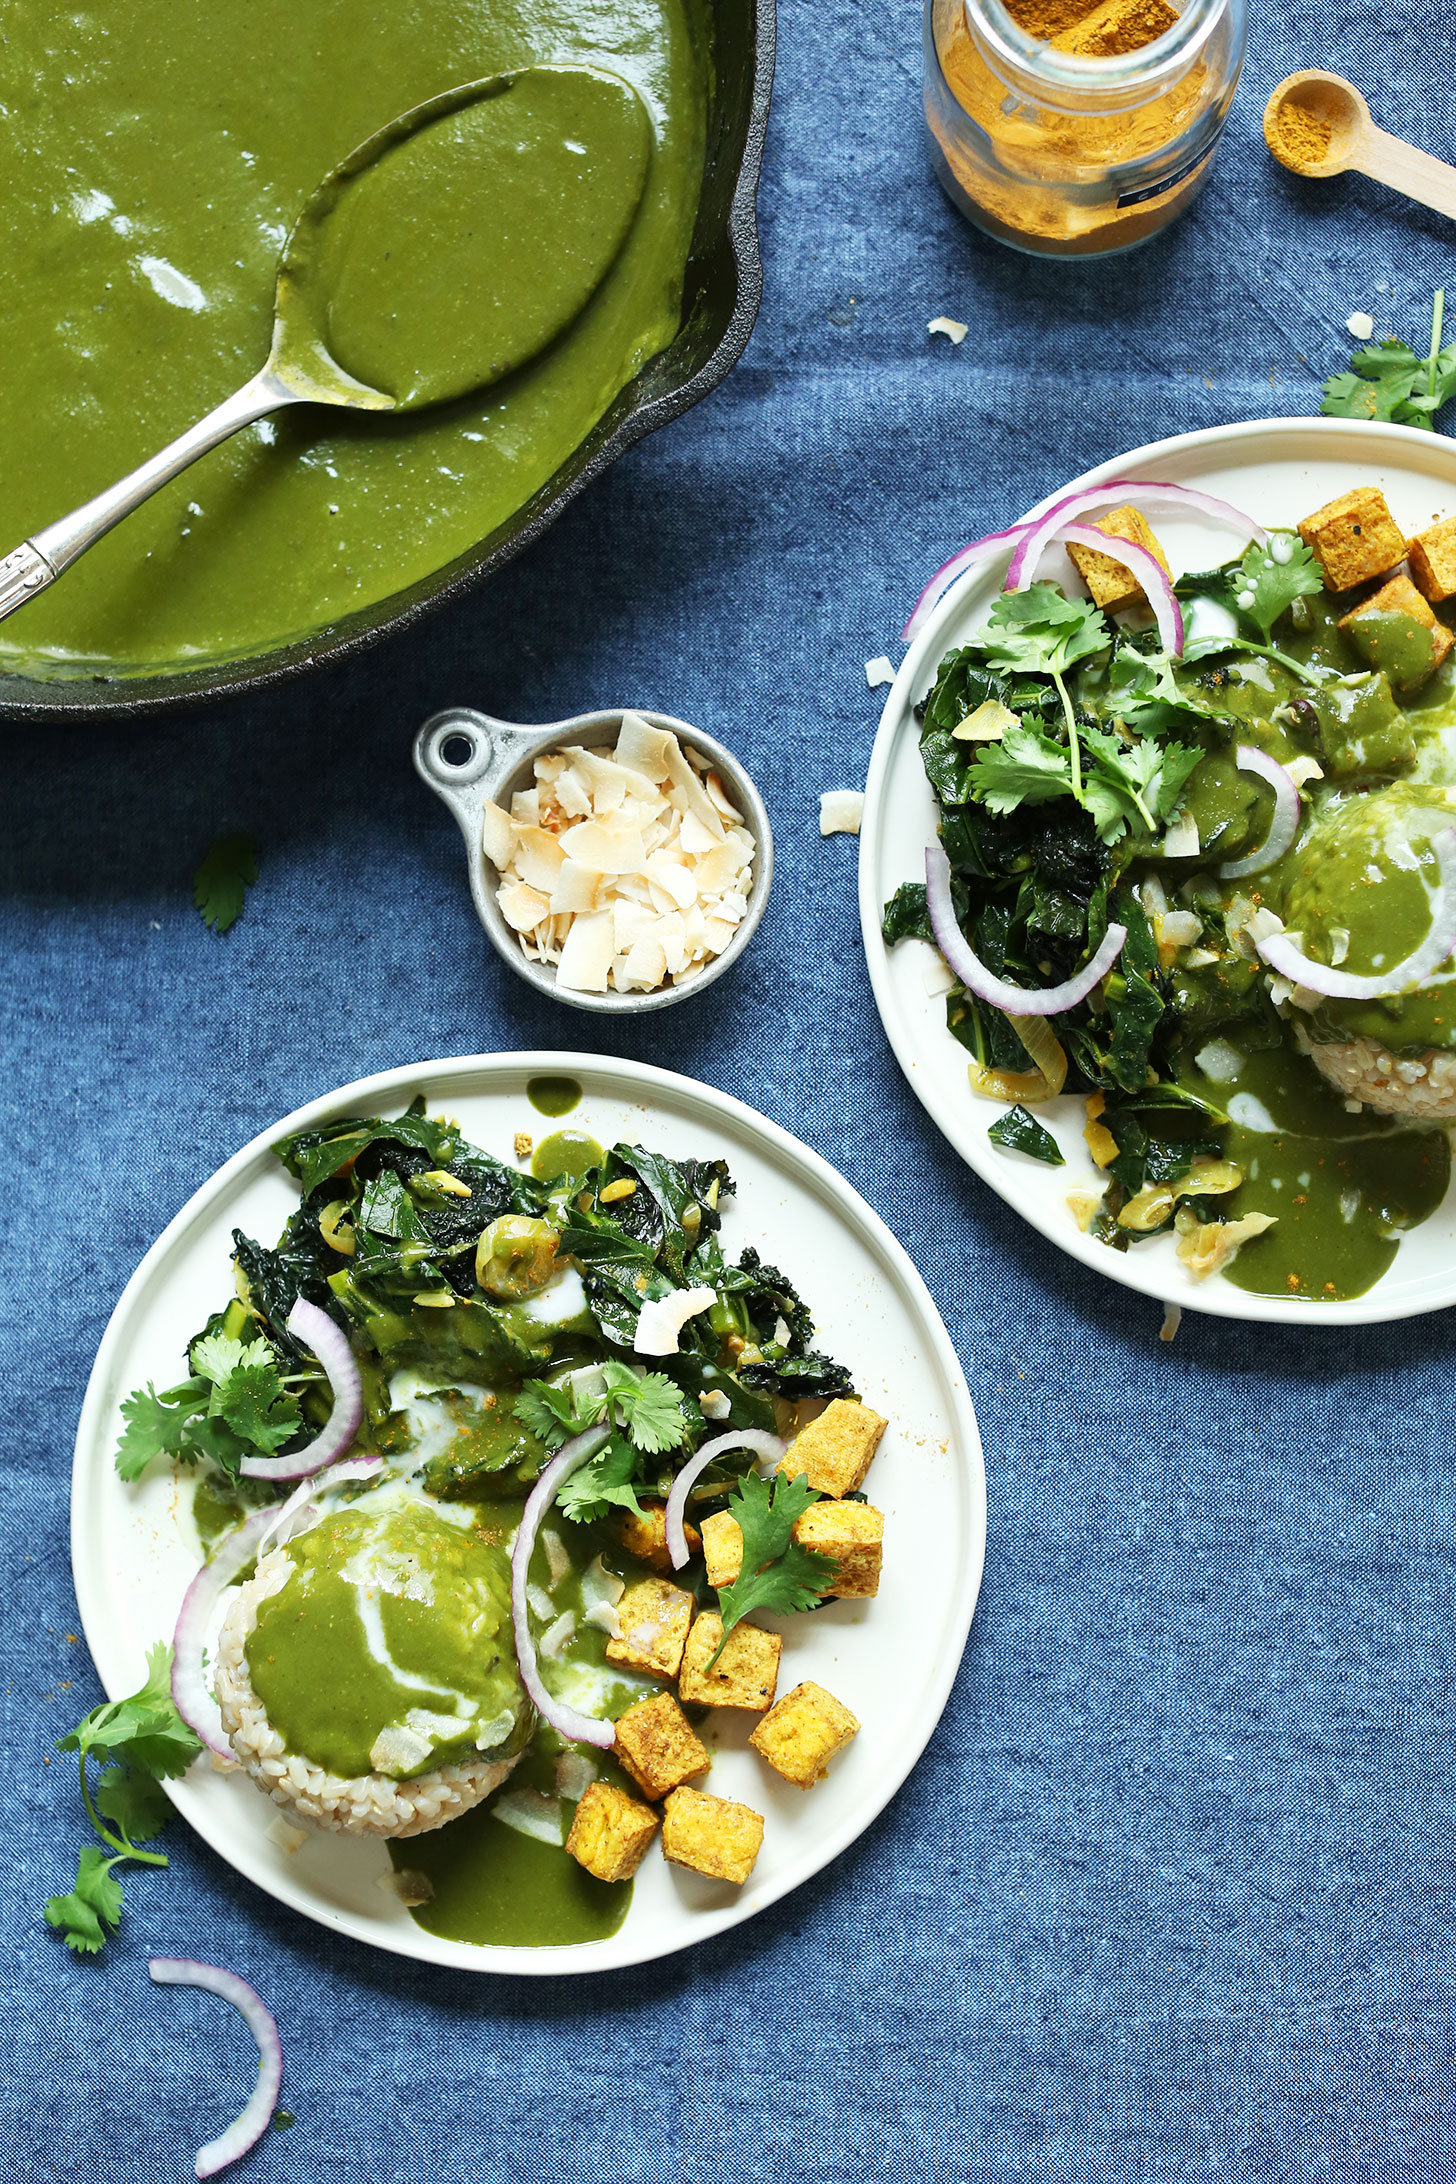 Two hearty dinner plates filled with Green Curry for a healthy plant-based meal